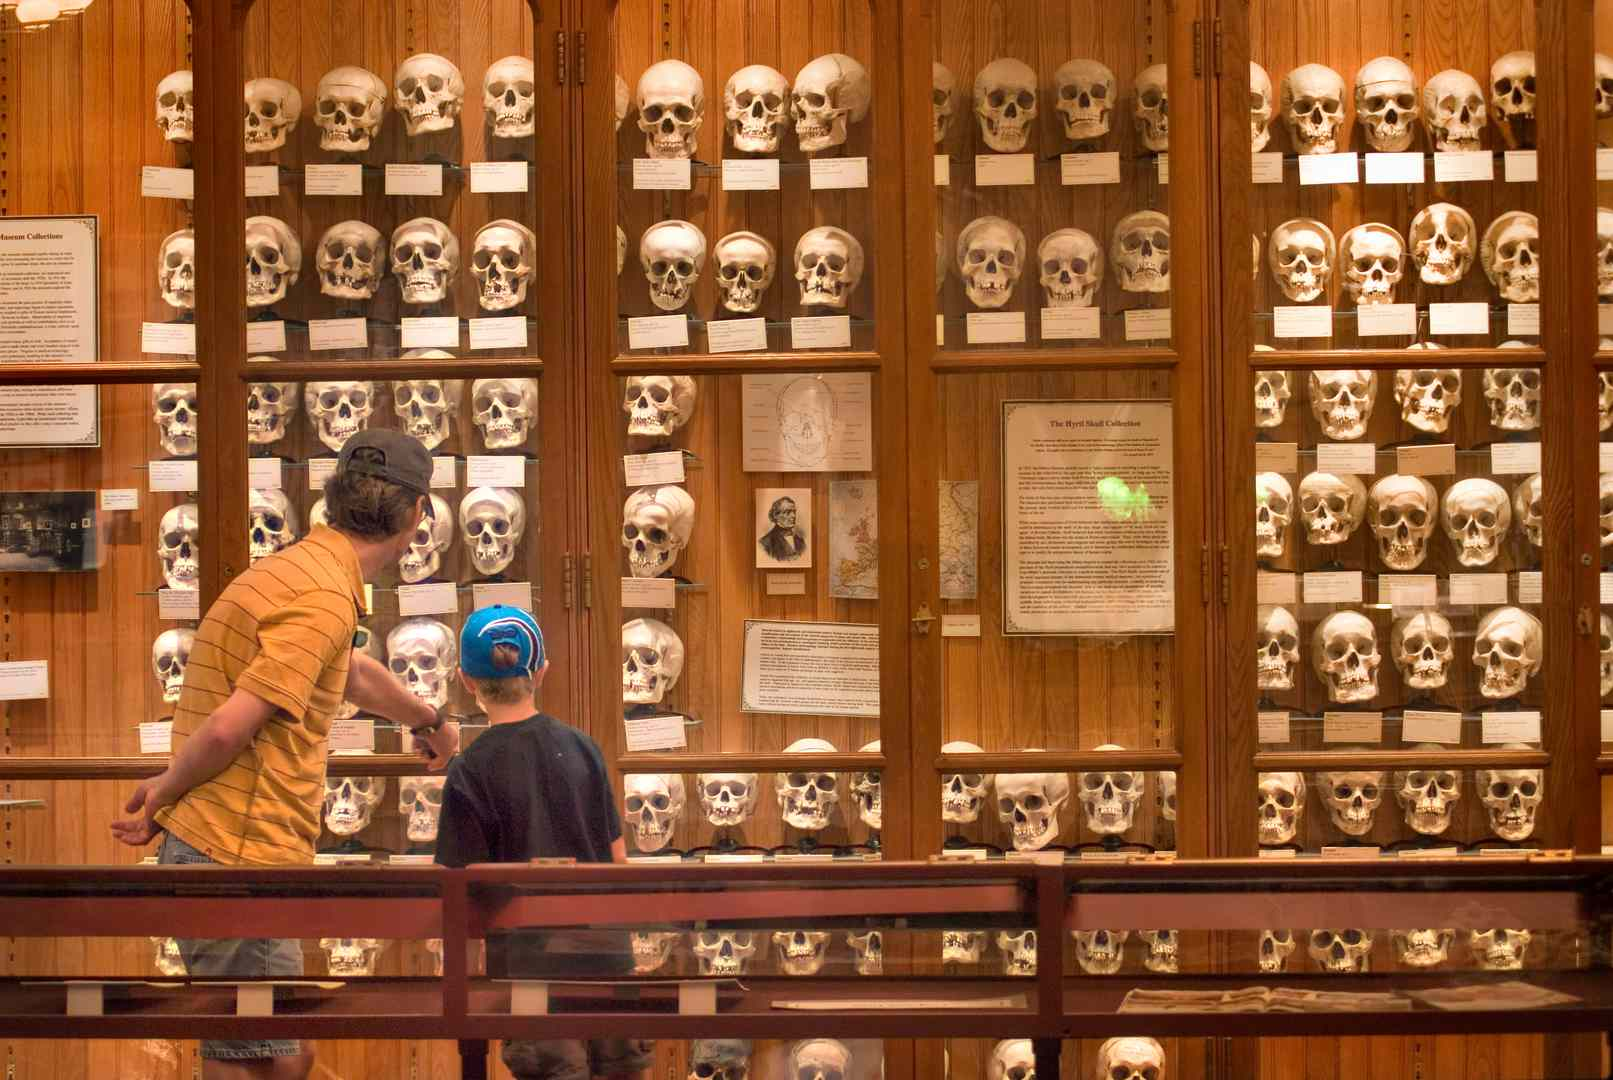 A display of skulls at the Mutter Museum